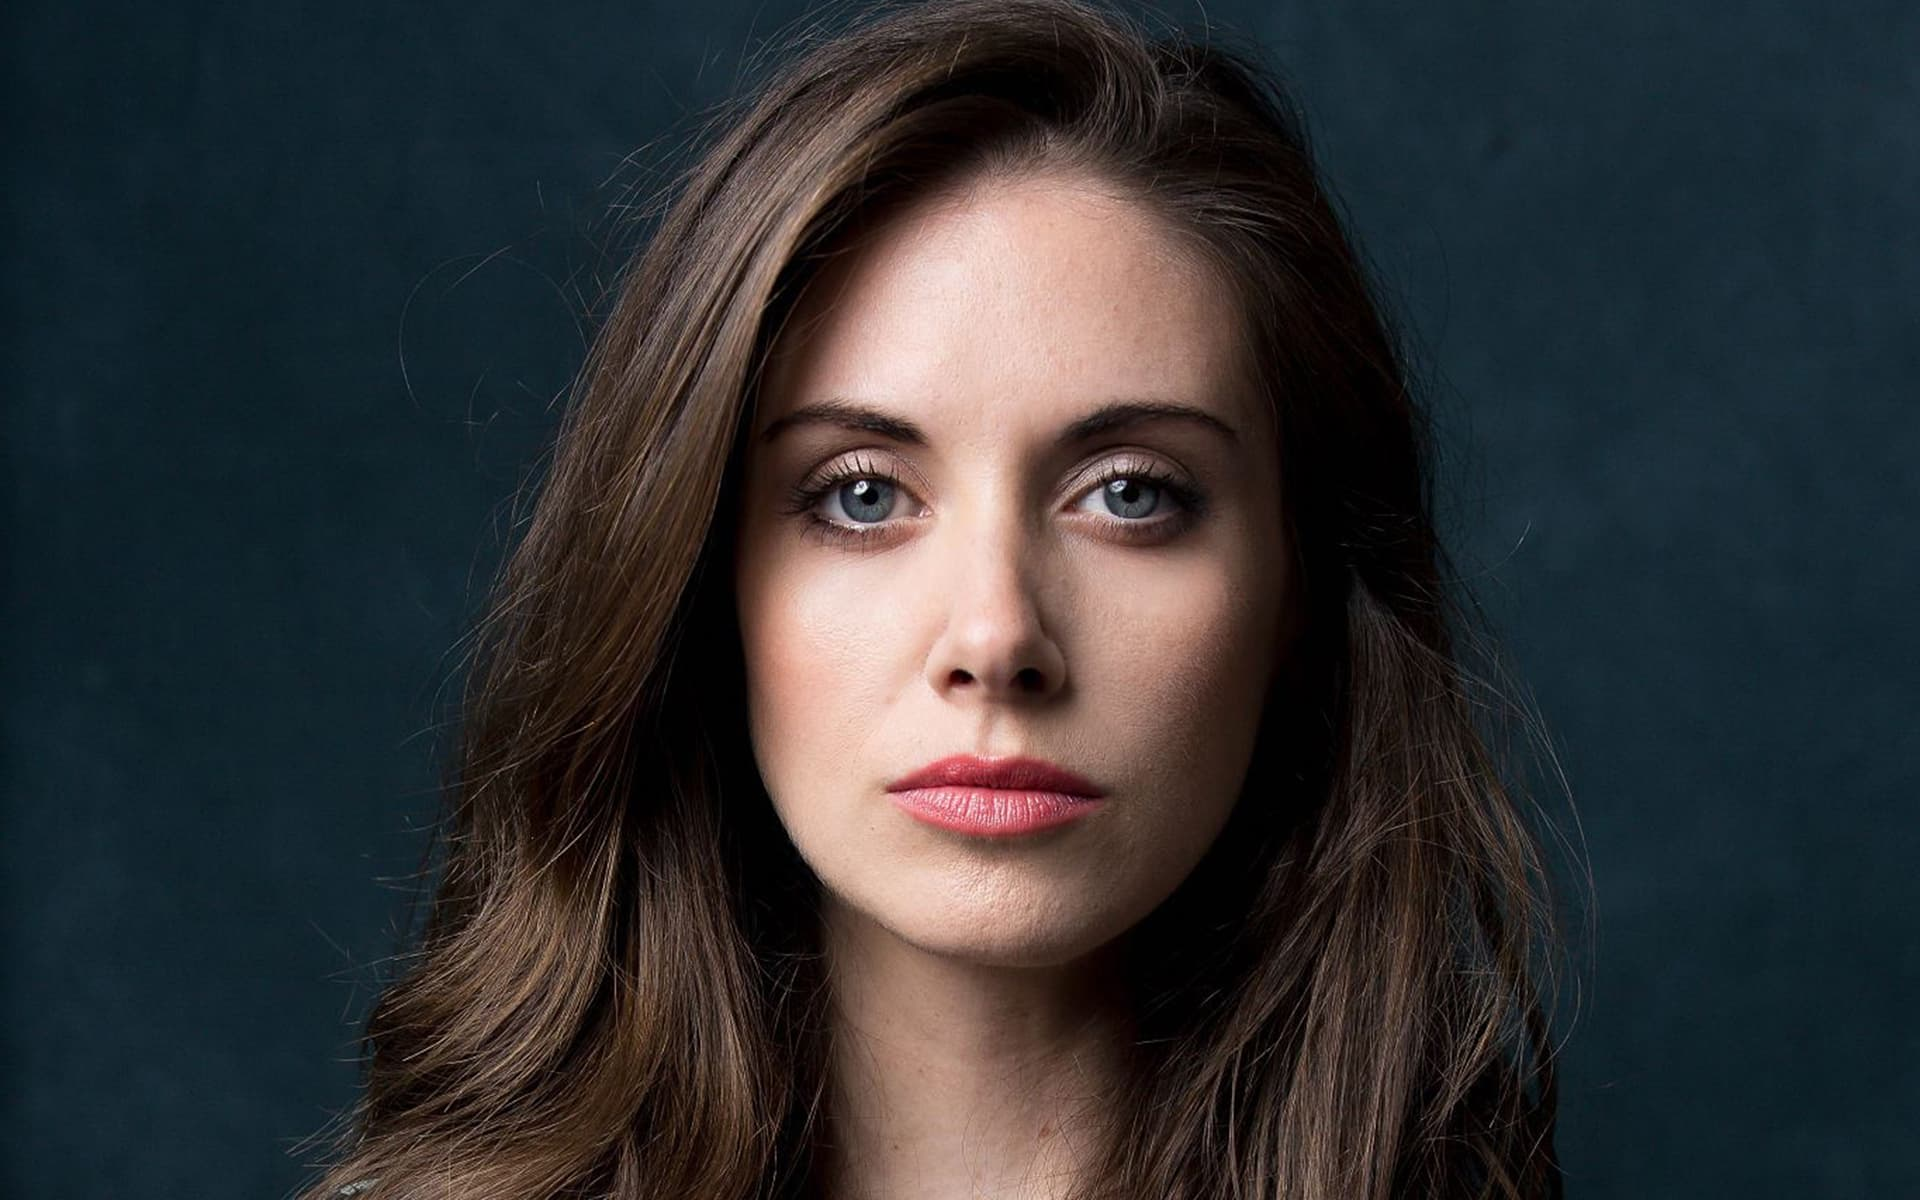 17 Alison Brie Wallpapers High Quality Resolution Download-7944